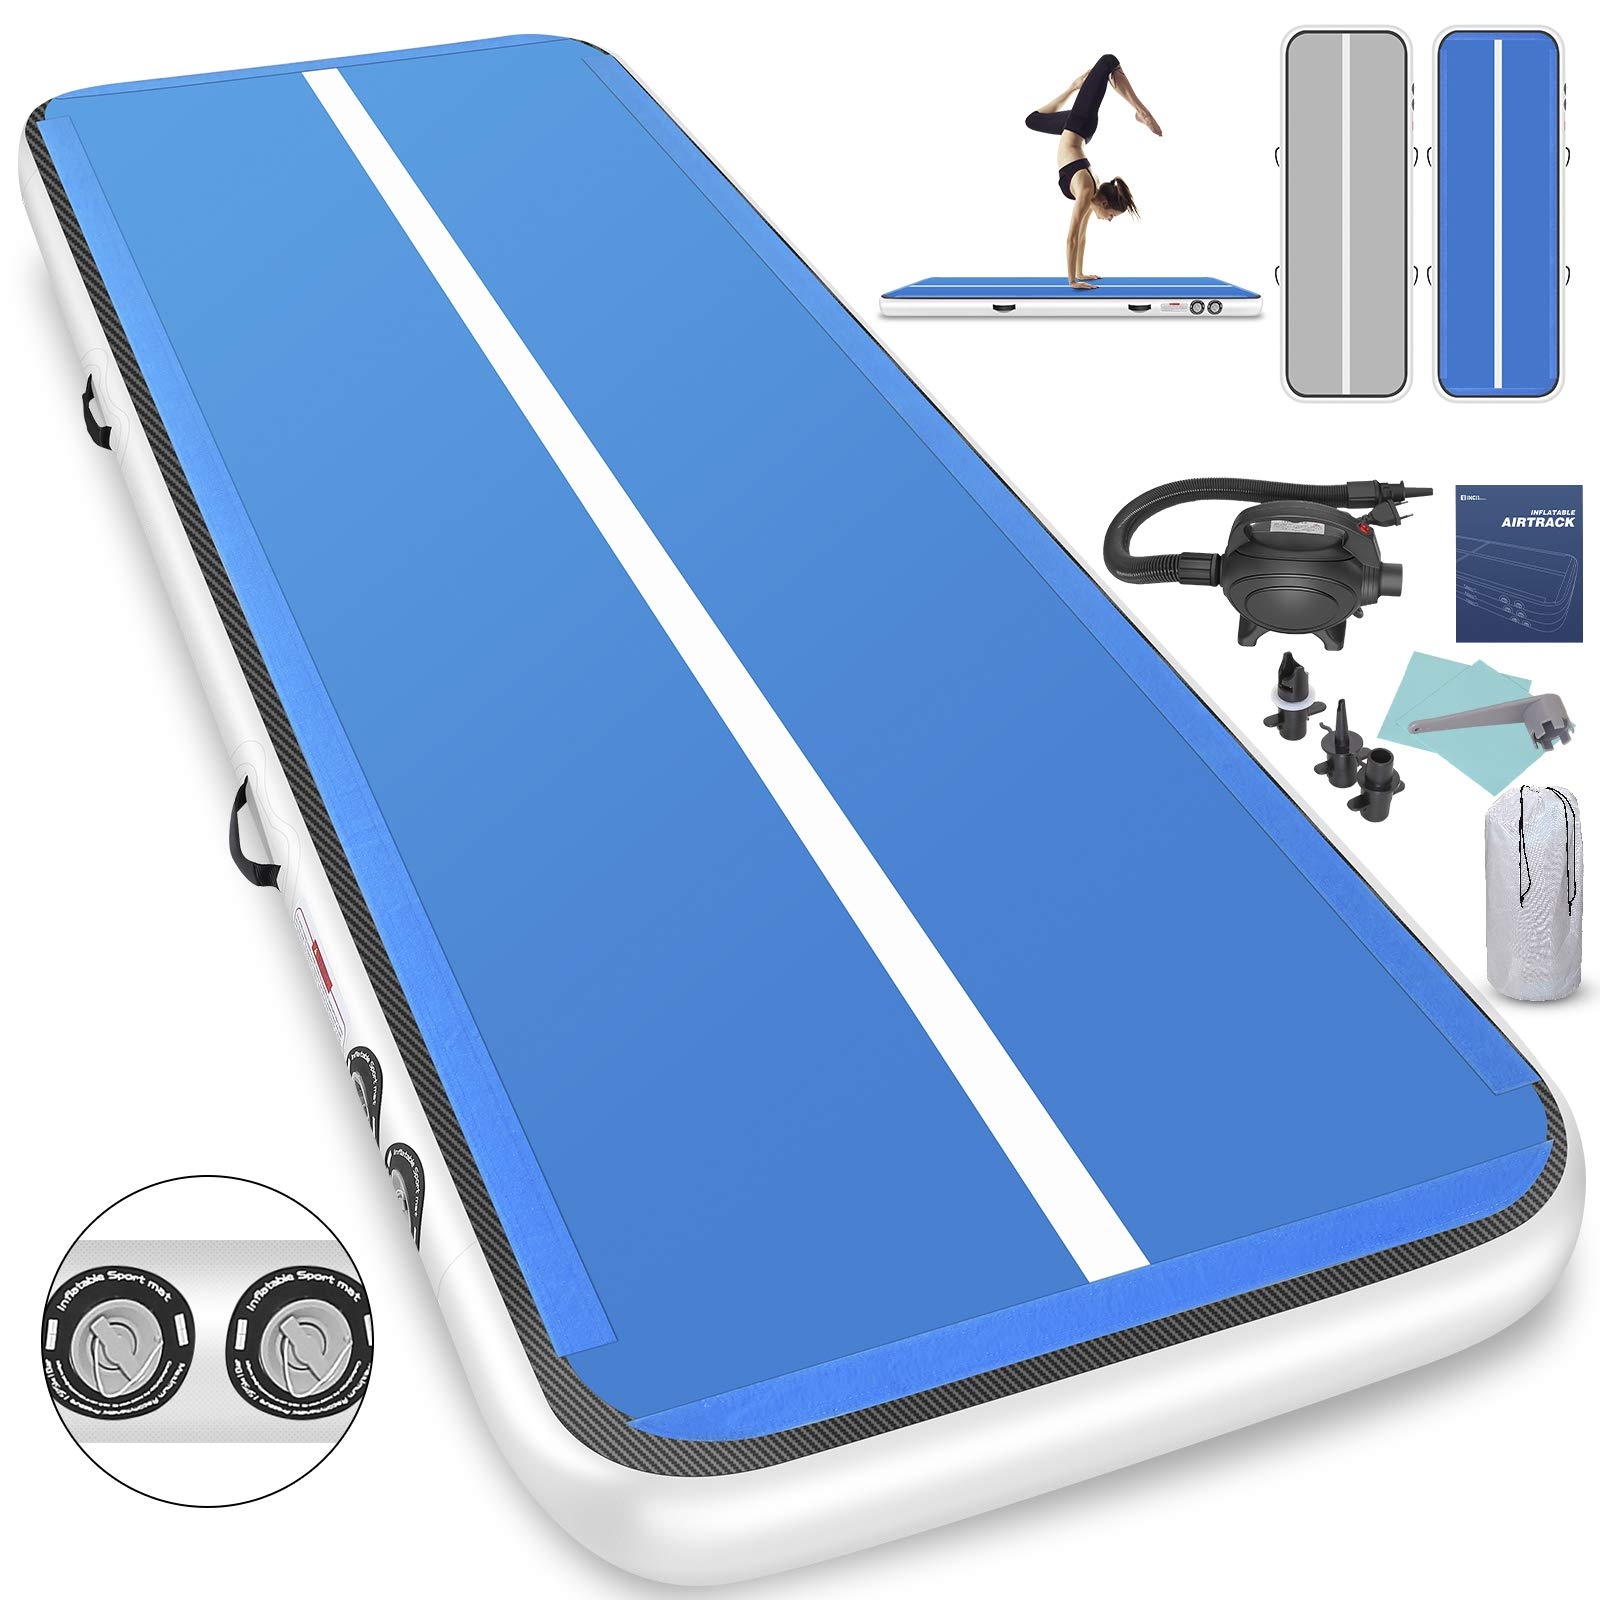 Furgle 10ft/13ft/16ft/20ft Inflatable Airtrack Gymnastics Tumbling Floor Mat,Tumble Track Air Mat,Home Use Air Tracks with Electric Air Pump for Kids/Gym/Training/Pool (10ftx3.3ftx6inch, Blue + Gray)